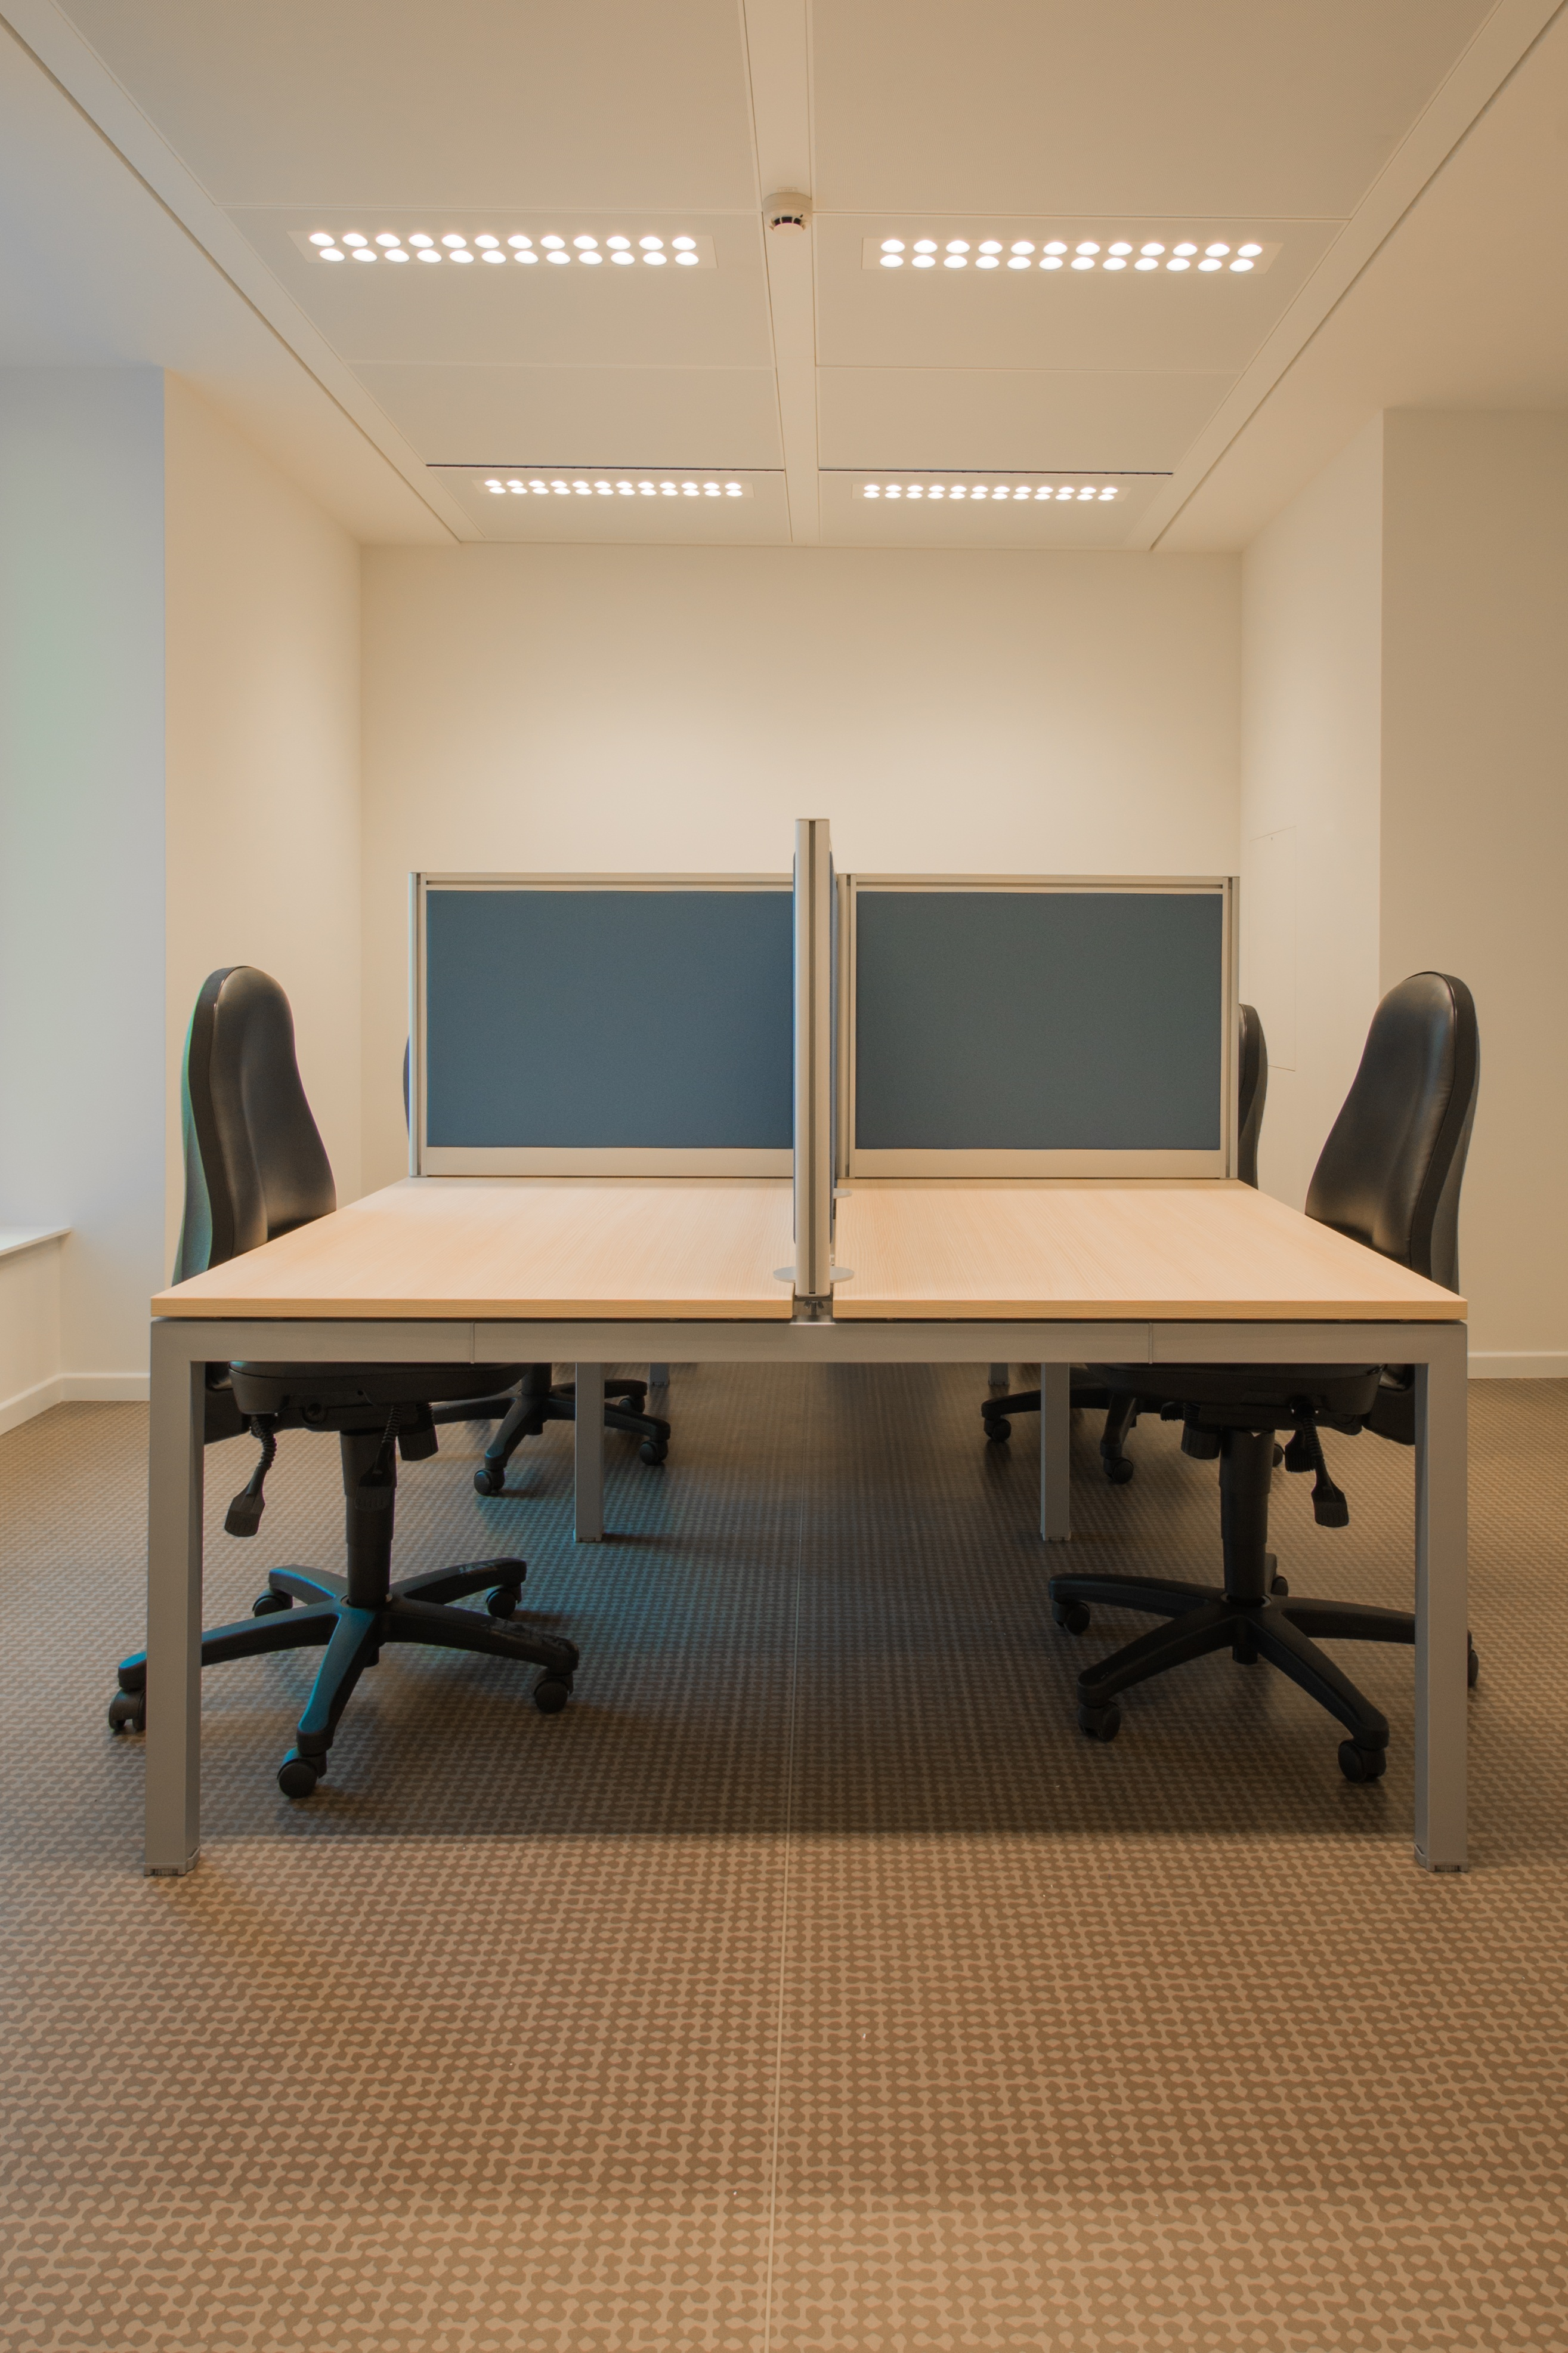 Beautiful Iphone 5 Wallpapers White Cubicle With Rolling Chairs 183 Free Stock Photo